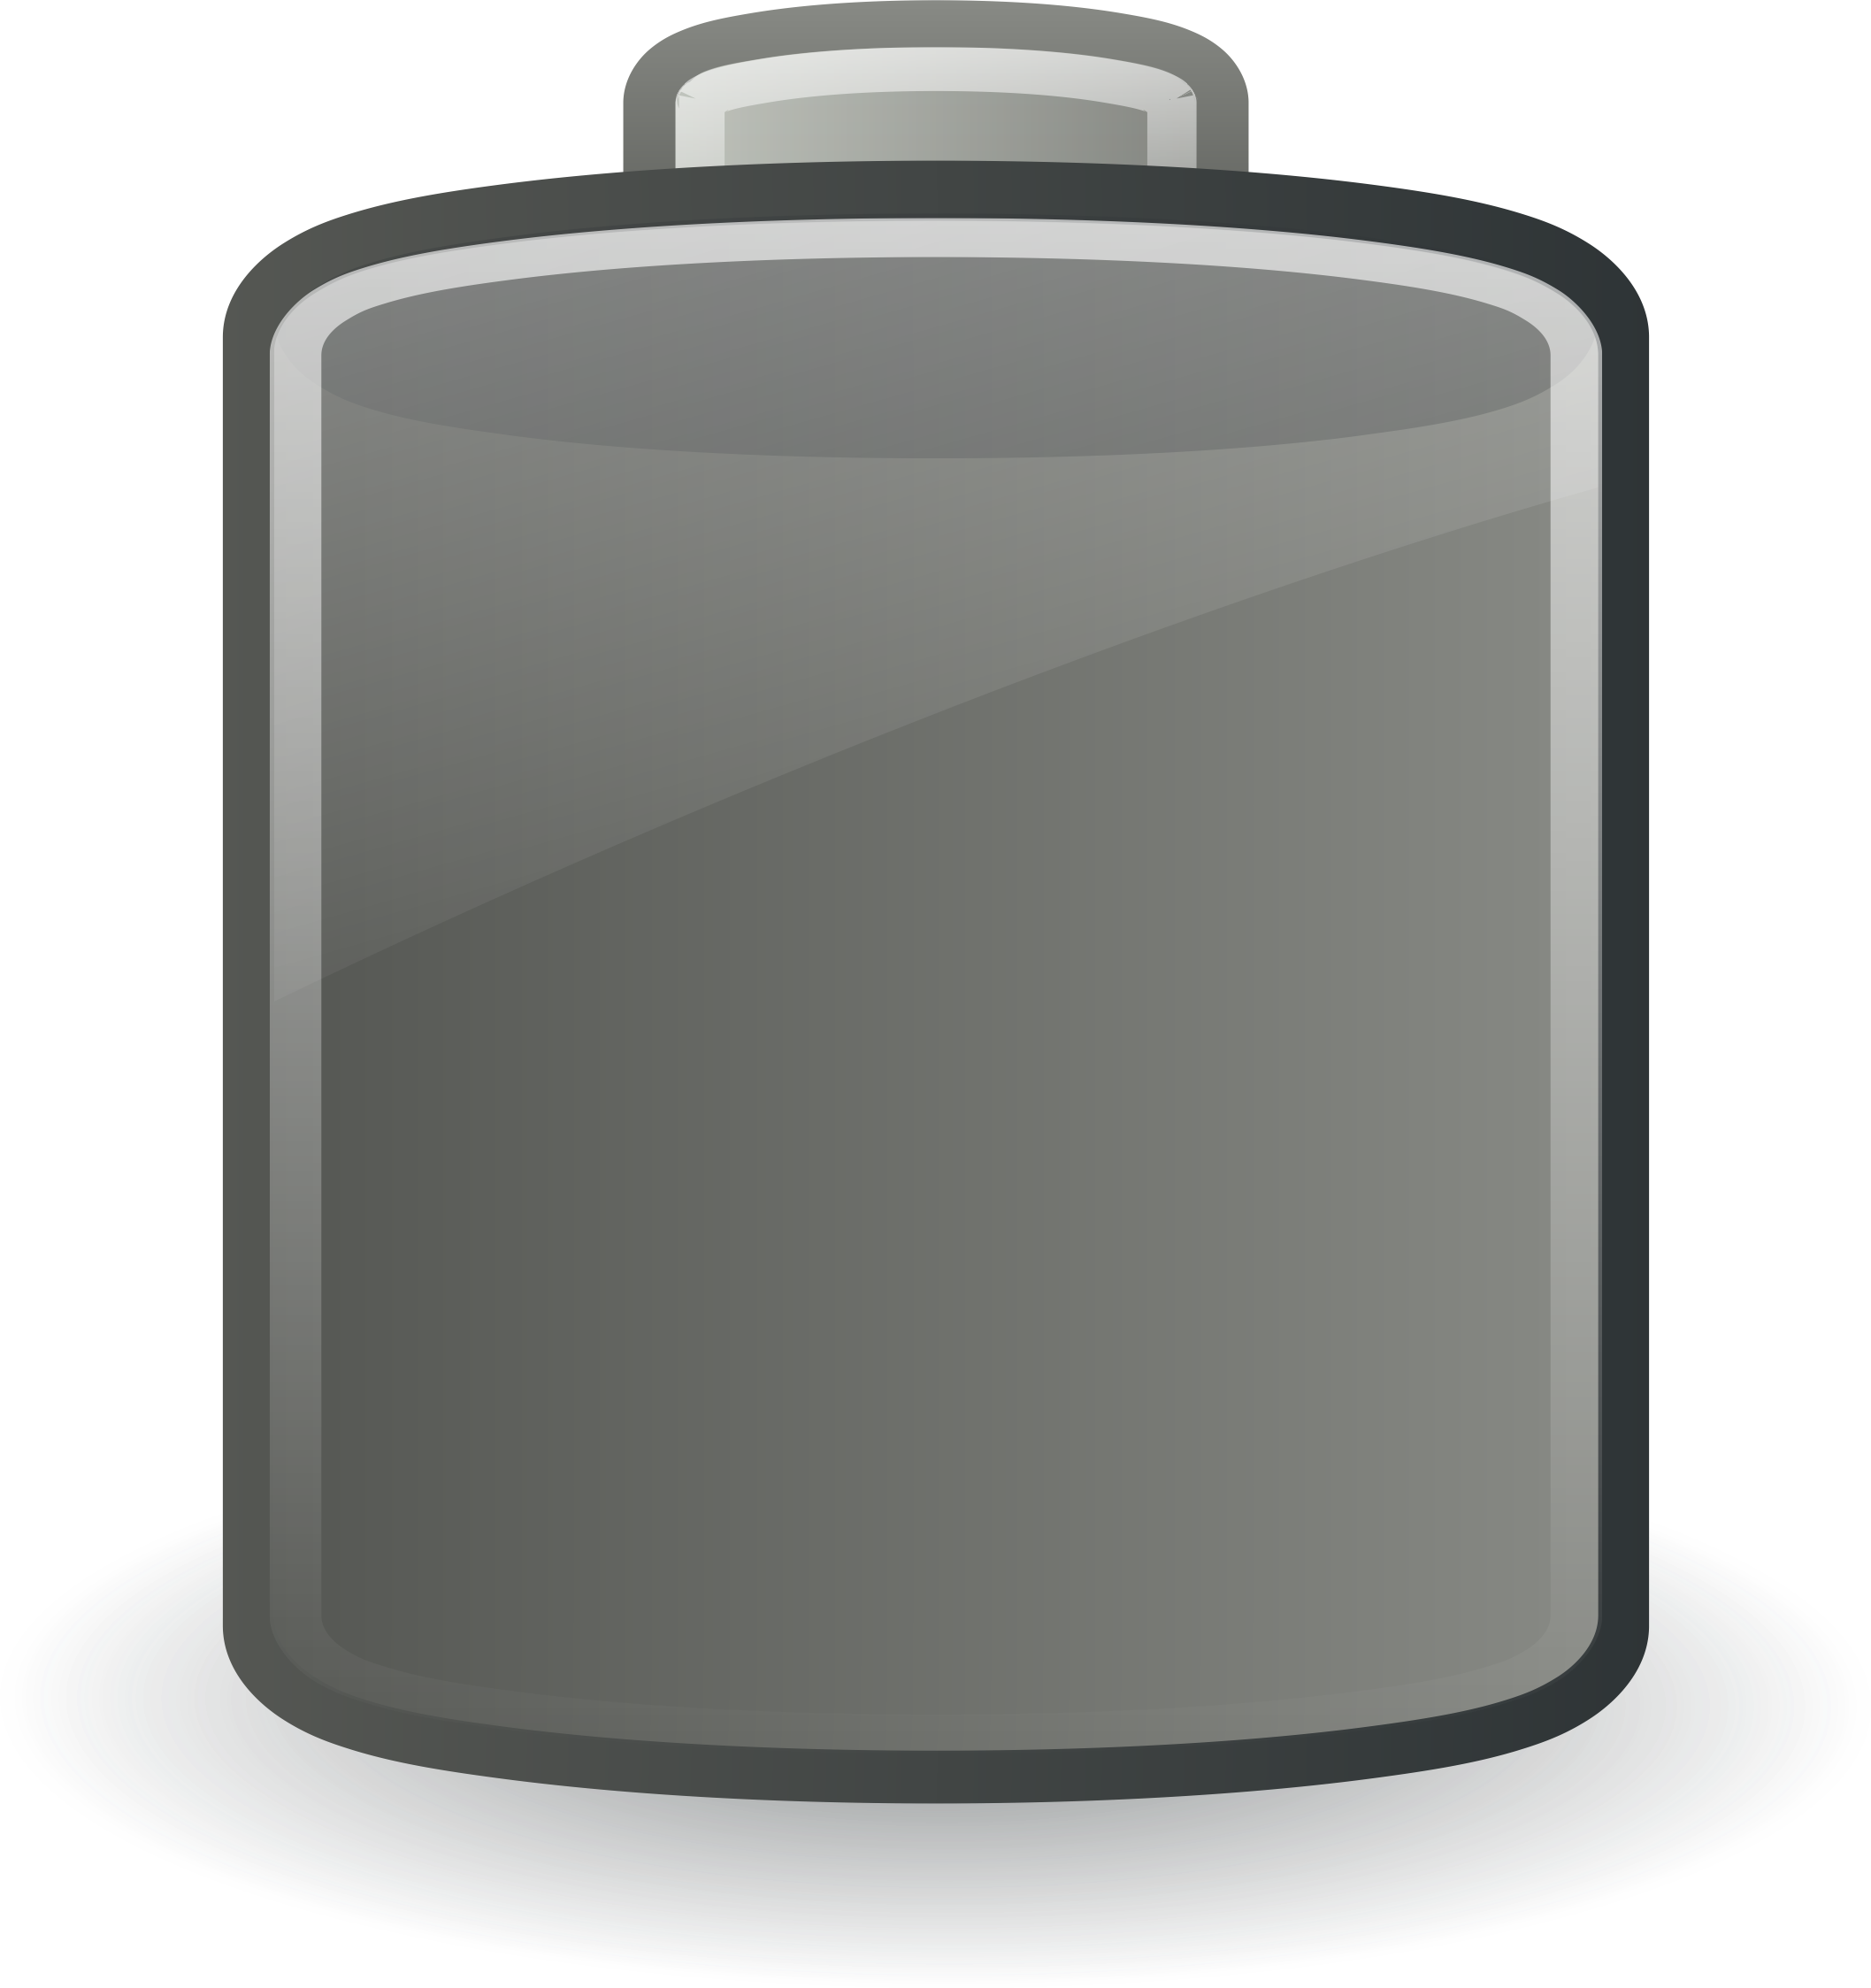 Battery Empty Image Icon Png image #31193